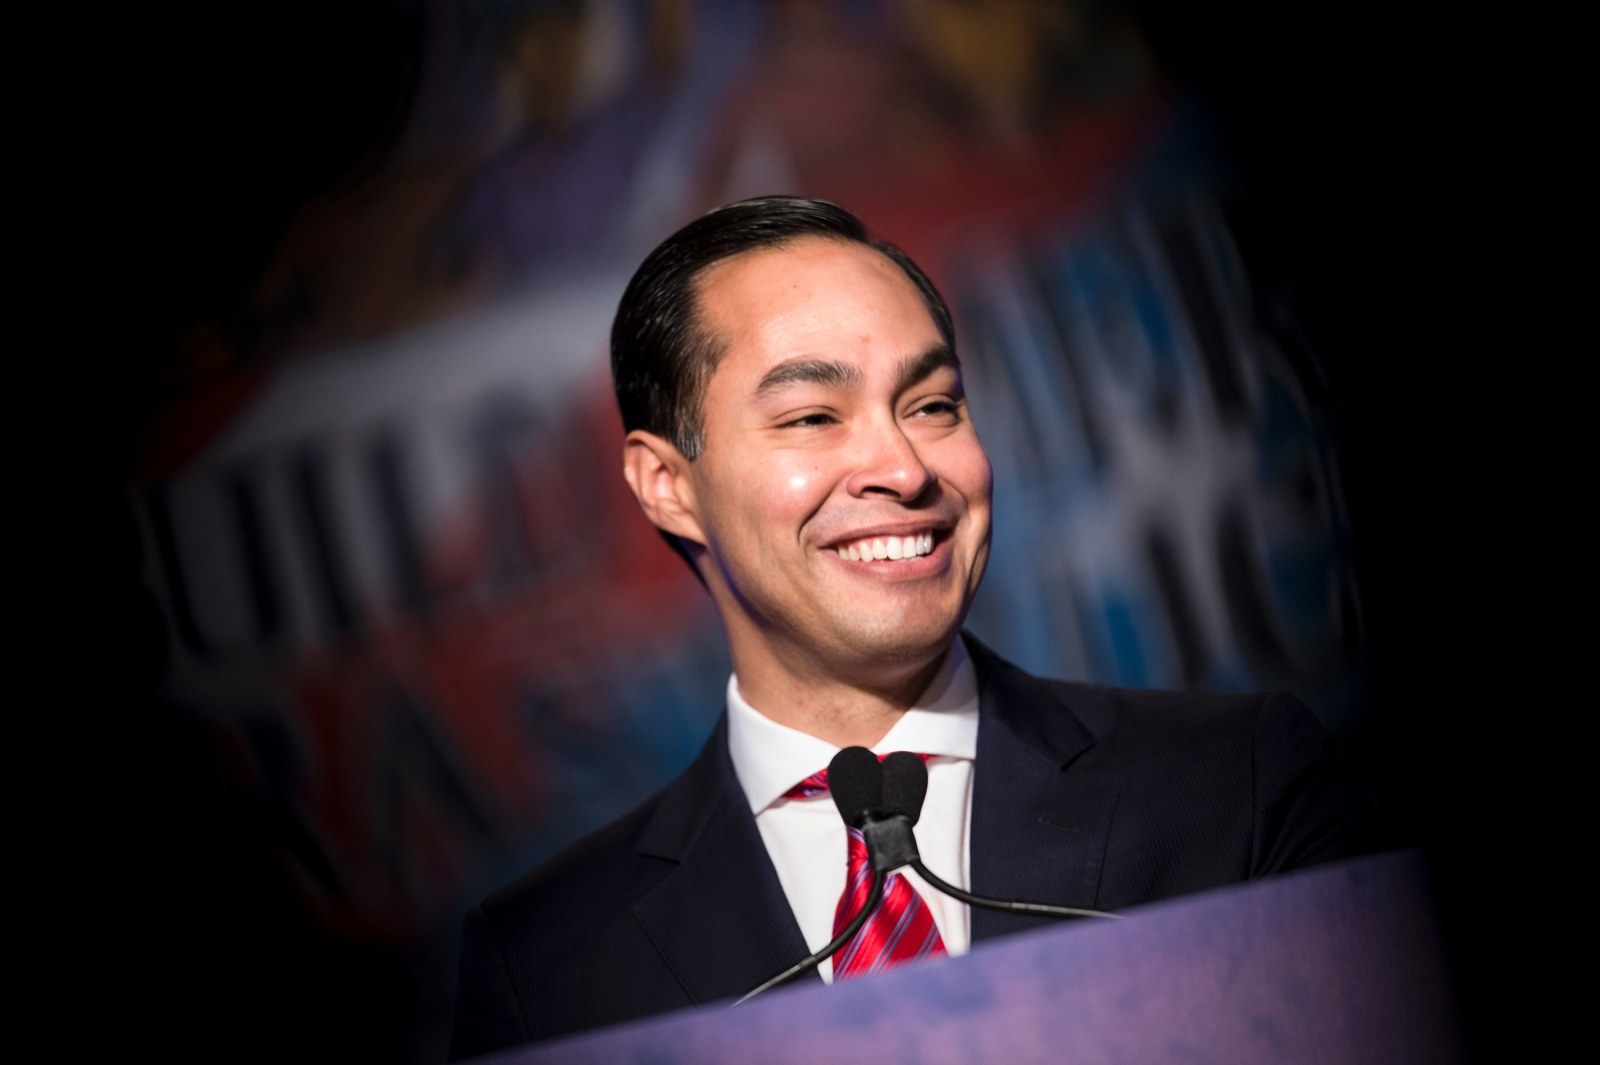 Here's What A Julián Castro Presidential Run Could Look Like